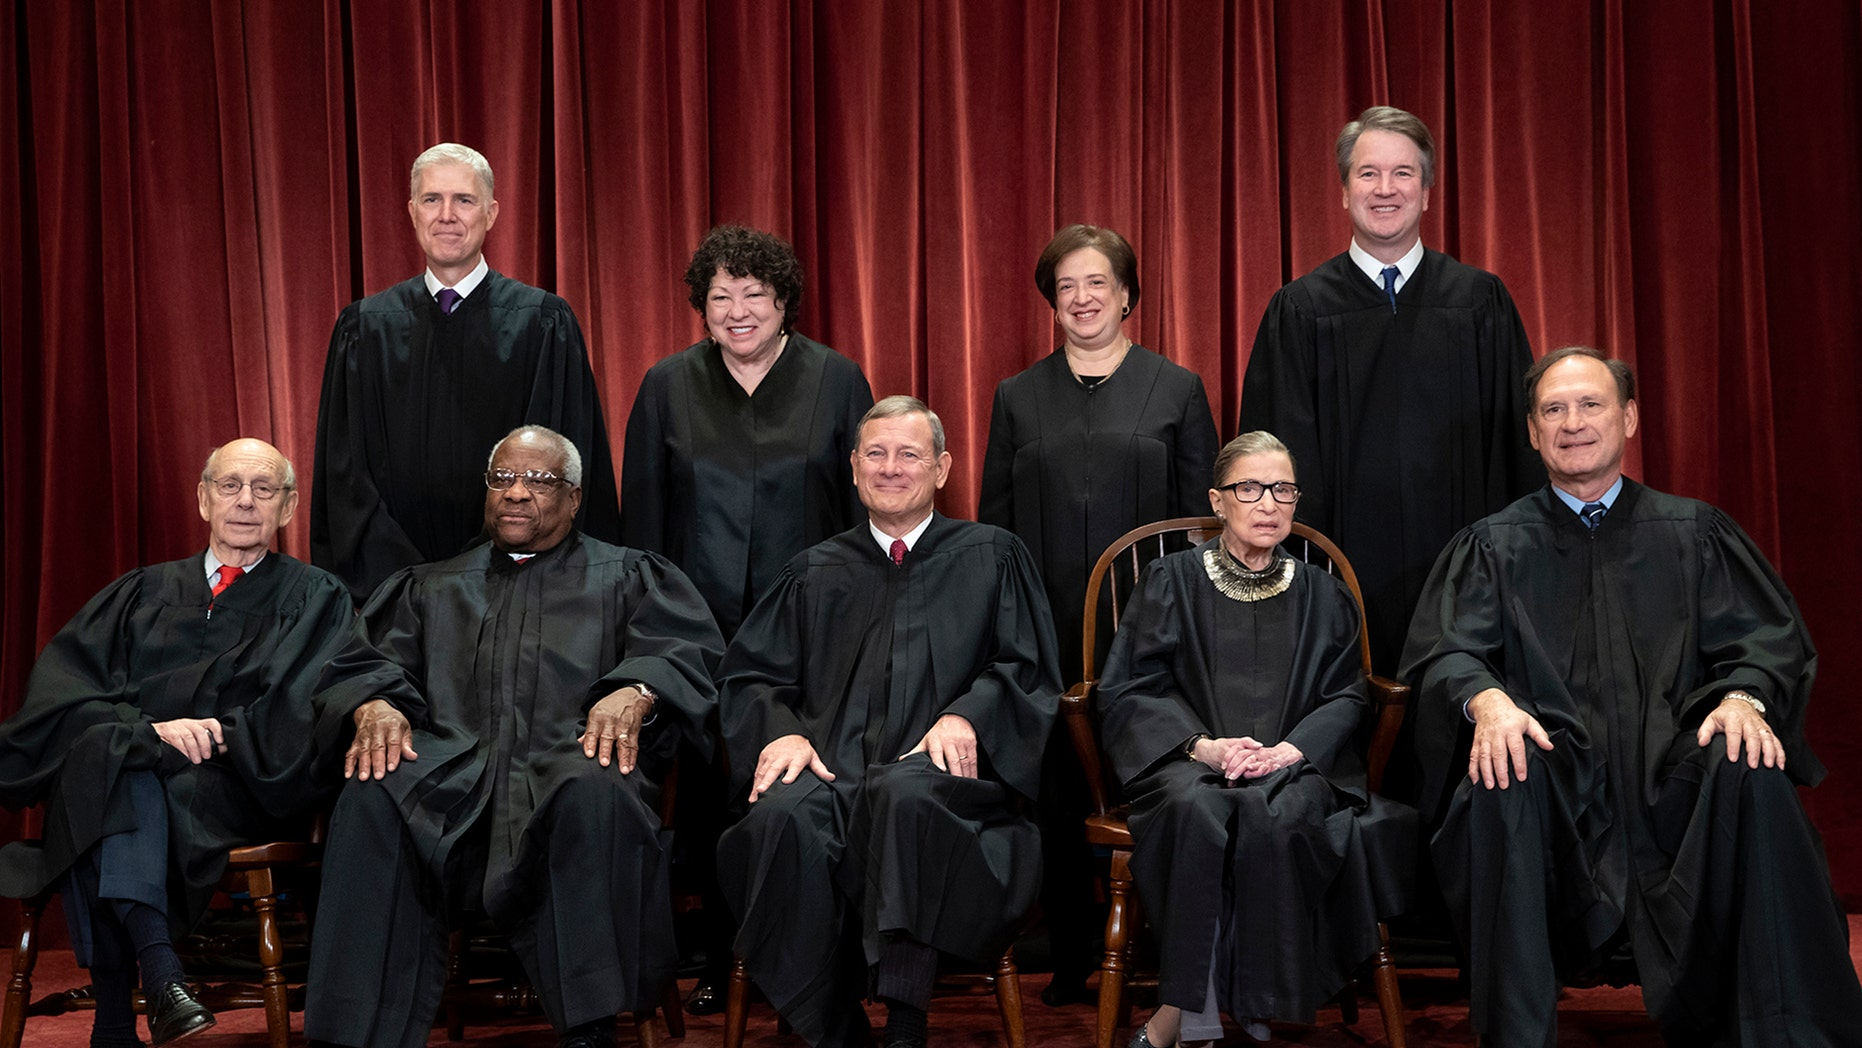 The justices of the U.S. Supreme Court gather for a formal group portrait to include the new Associate Justice, top row, far right, at the Supreme Court Building in Washington, Friday, Nov. 30, 2018.  (AP Photo/J. Scott Applewhite)